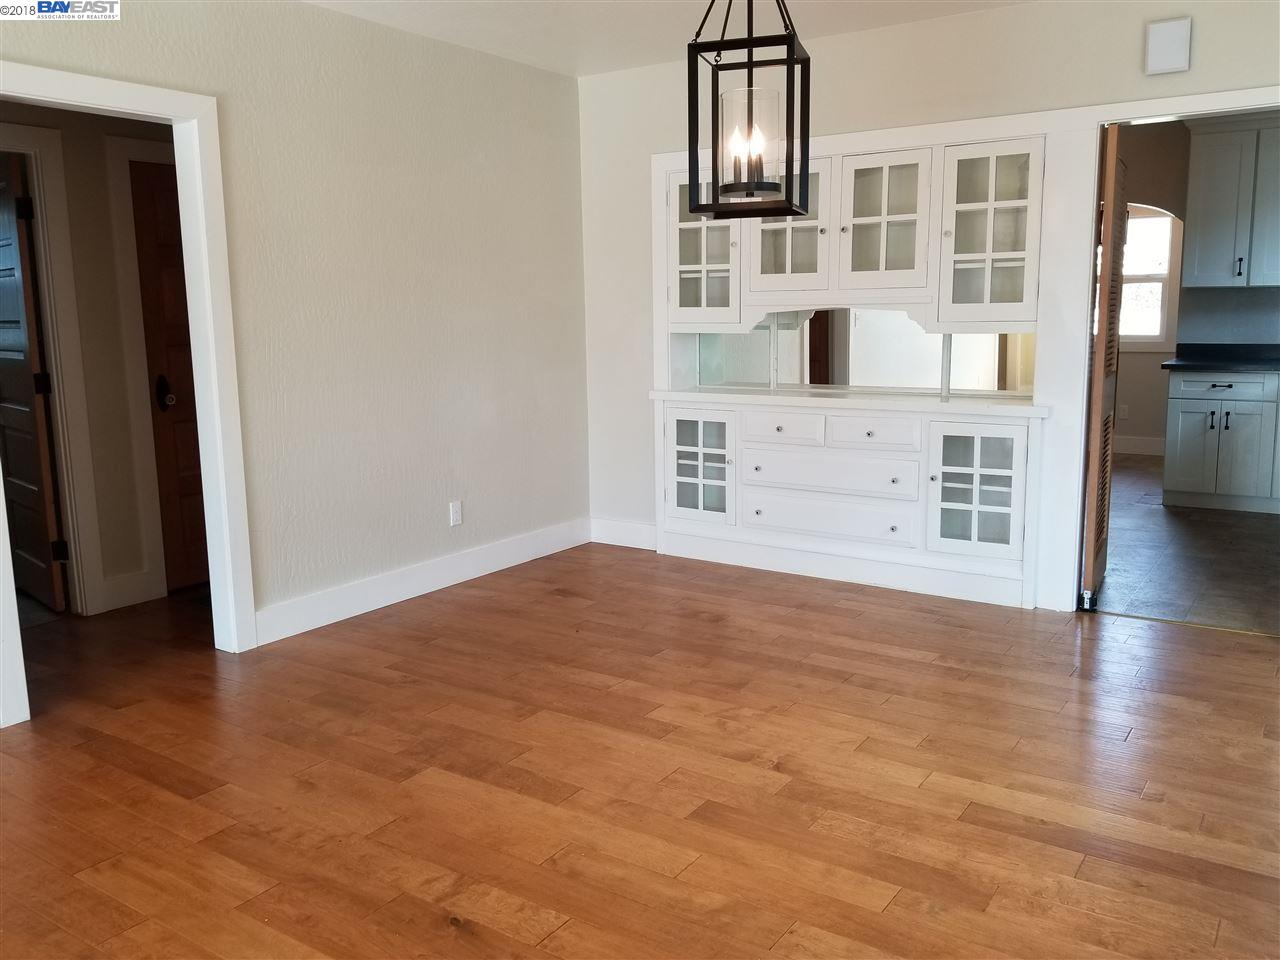 Additional photo for property listing at 6264 Hayes Street 6264 Hayes Street Oakland, カリフォルニア 94621 アメリカ合衆国